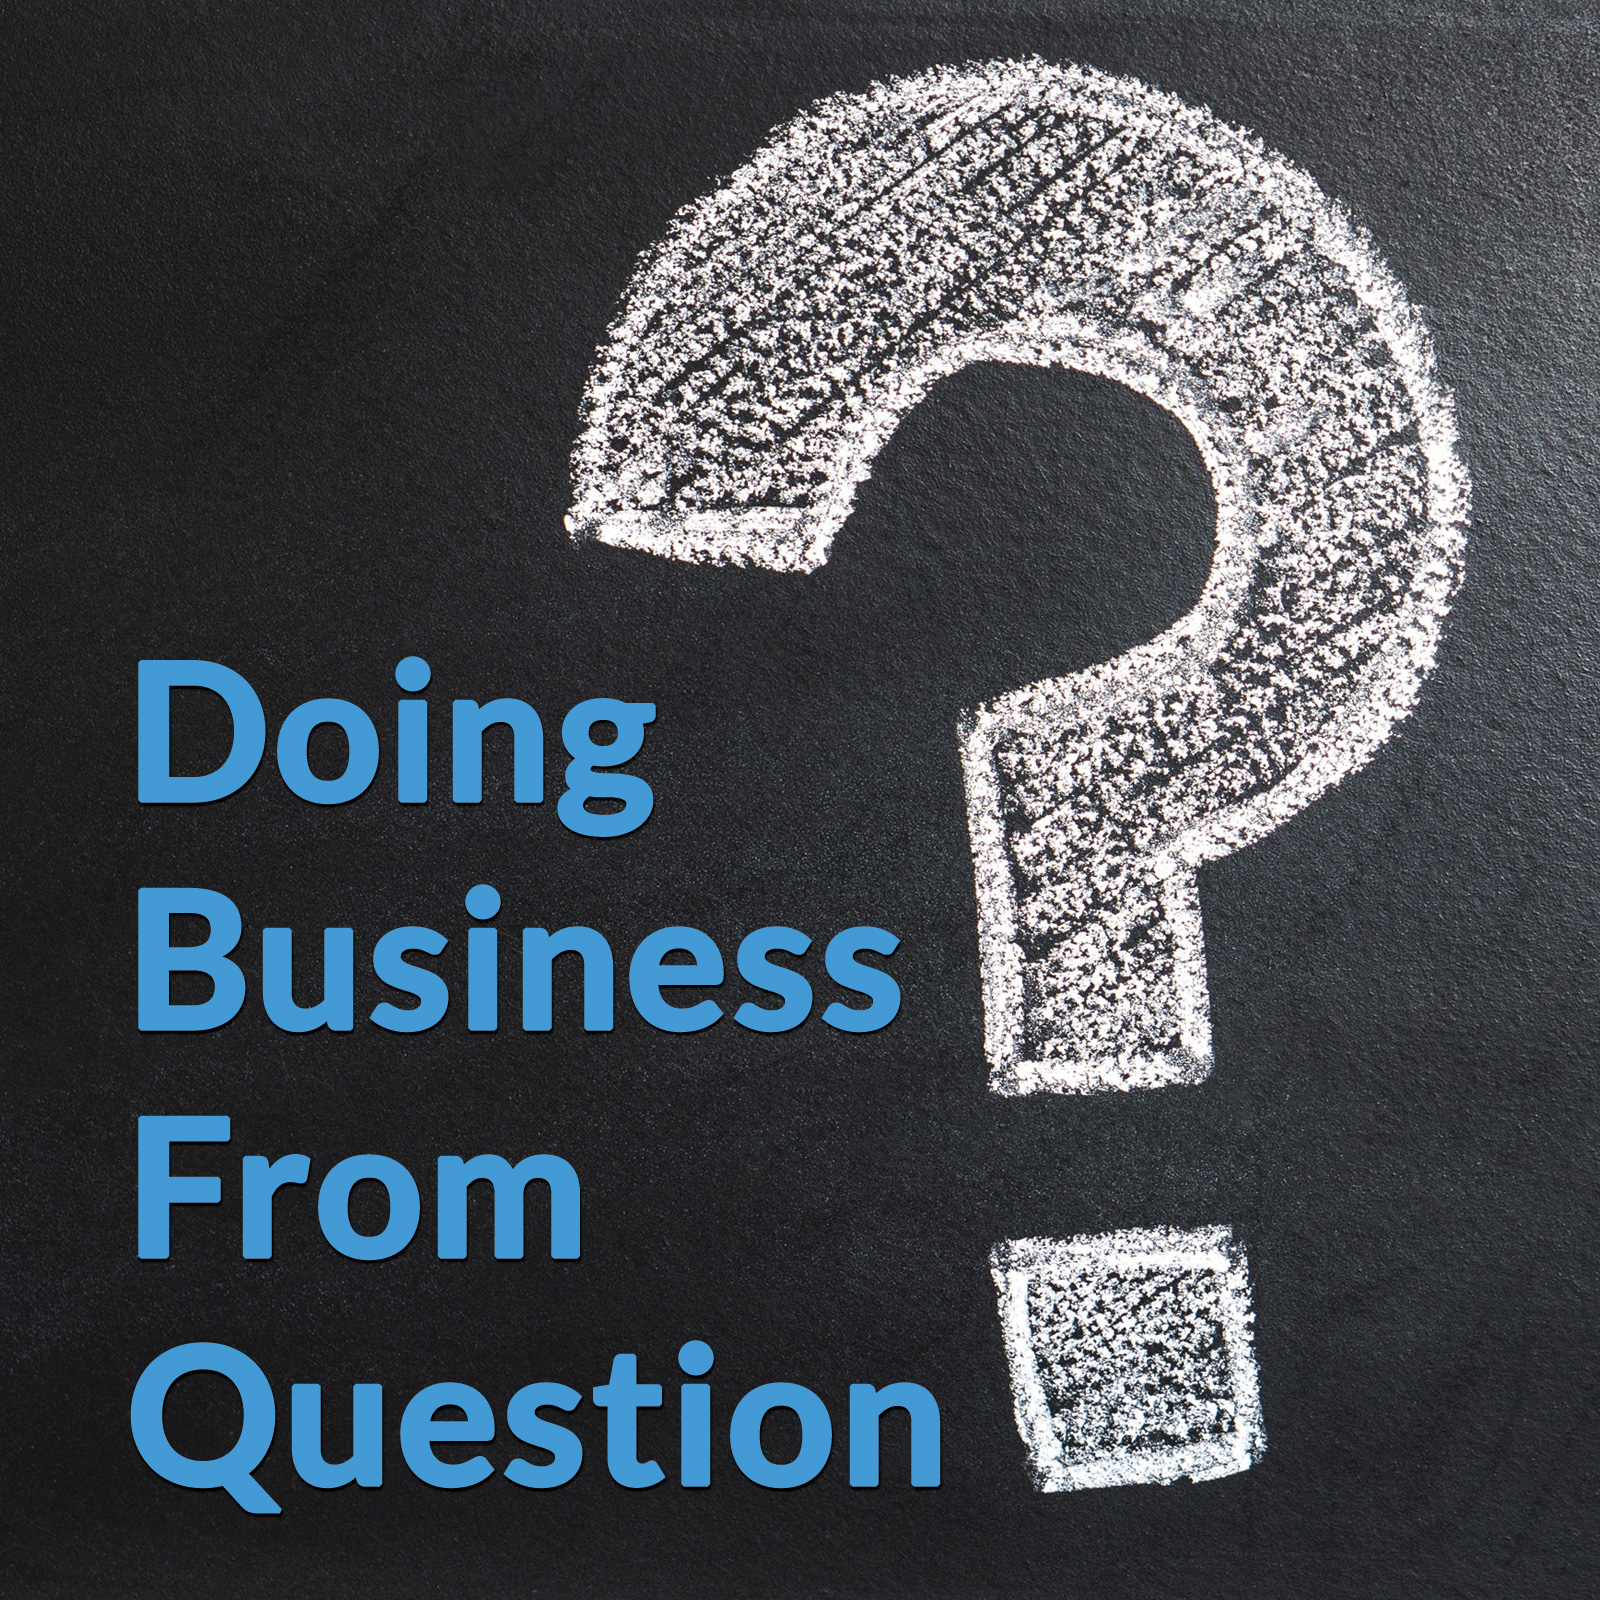 Doing Business From Question